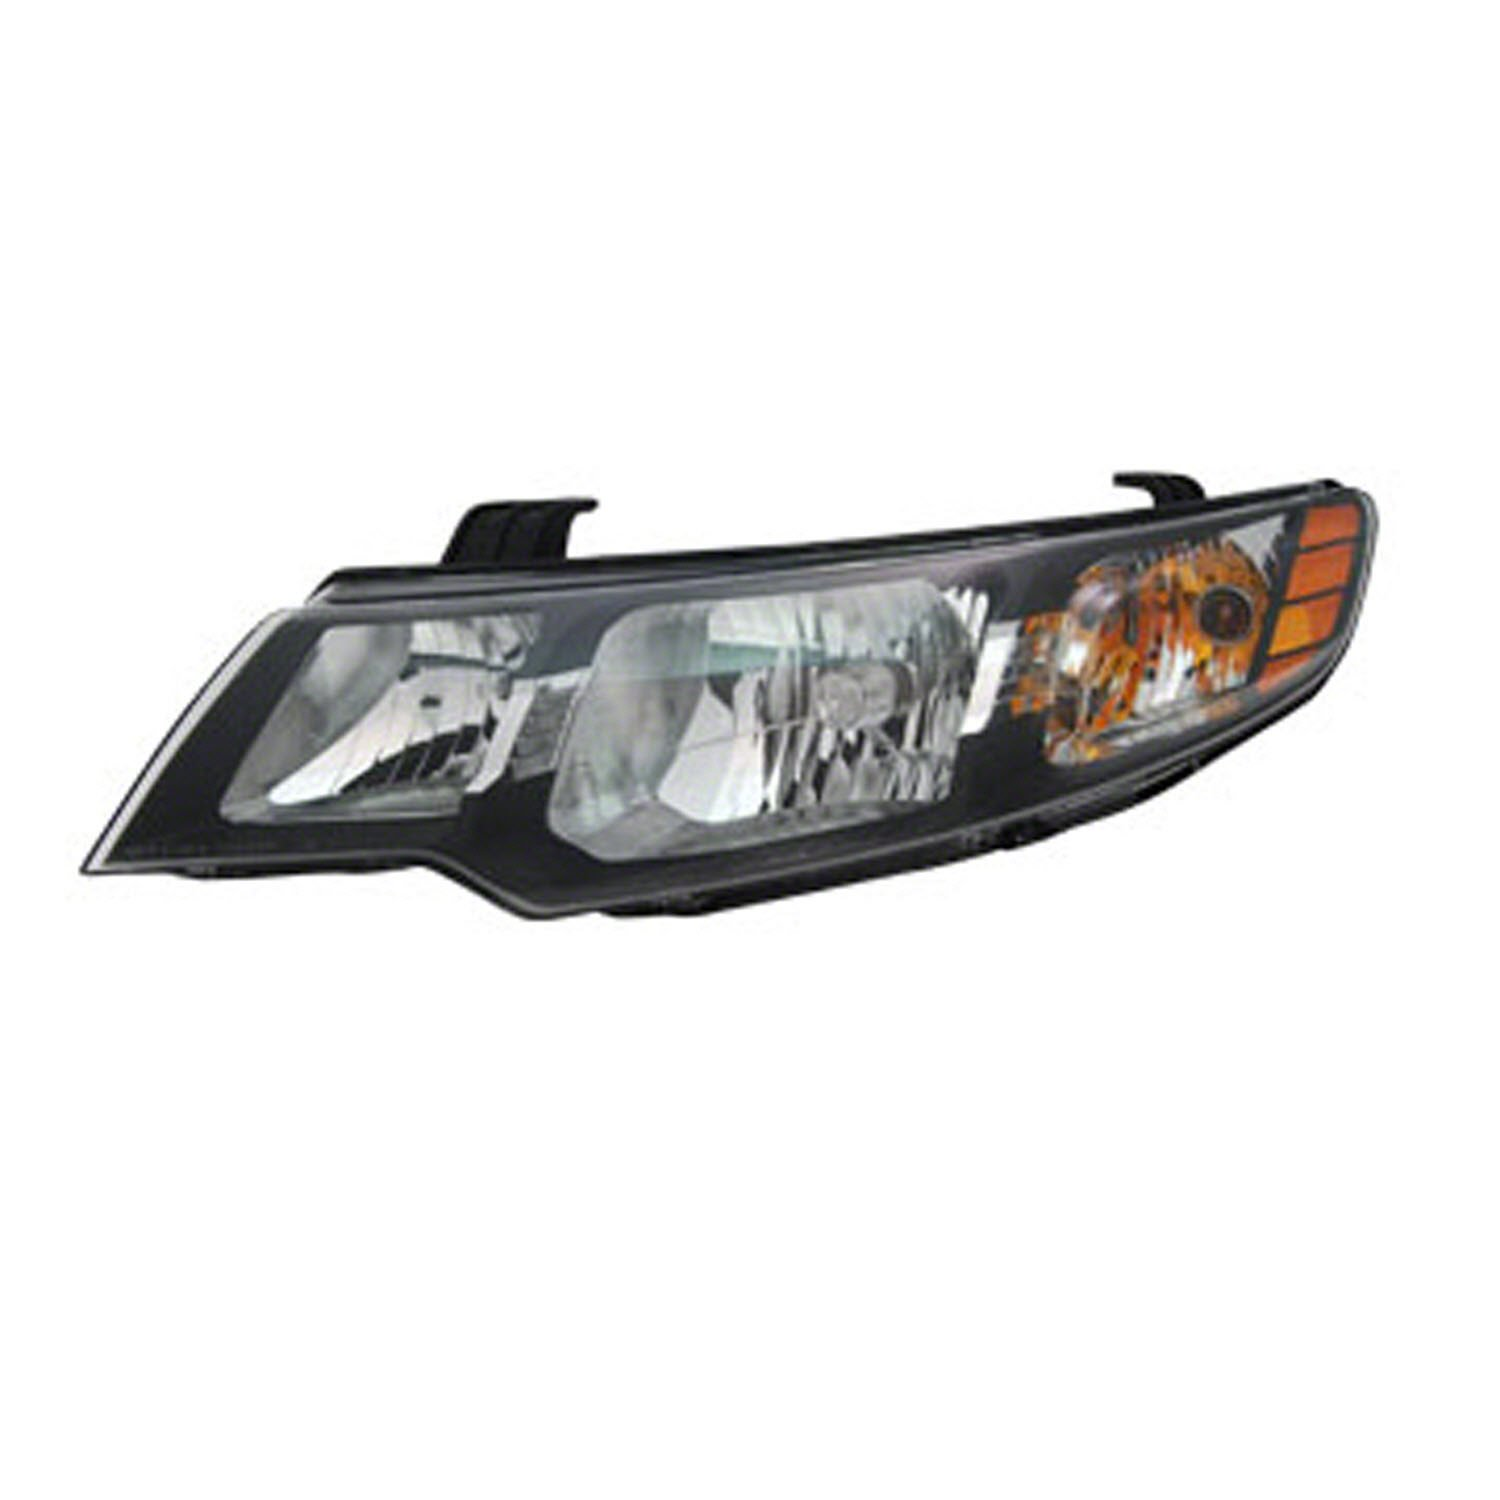 OE Replacement Headlight Assembly KIA FORTE 2012-2013 Partslink KI2502141 Multiple Manufacturers KI2502141R